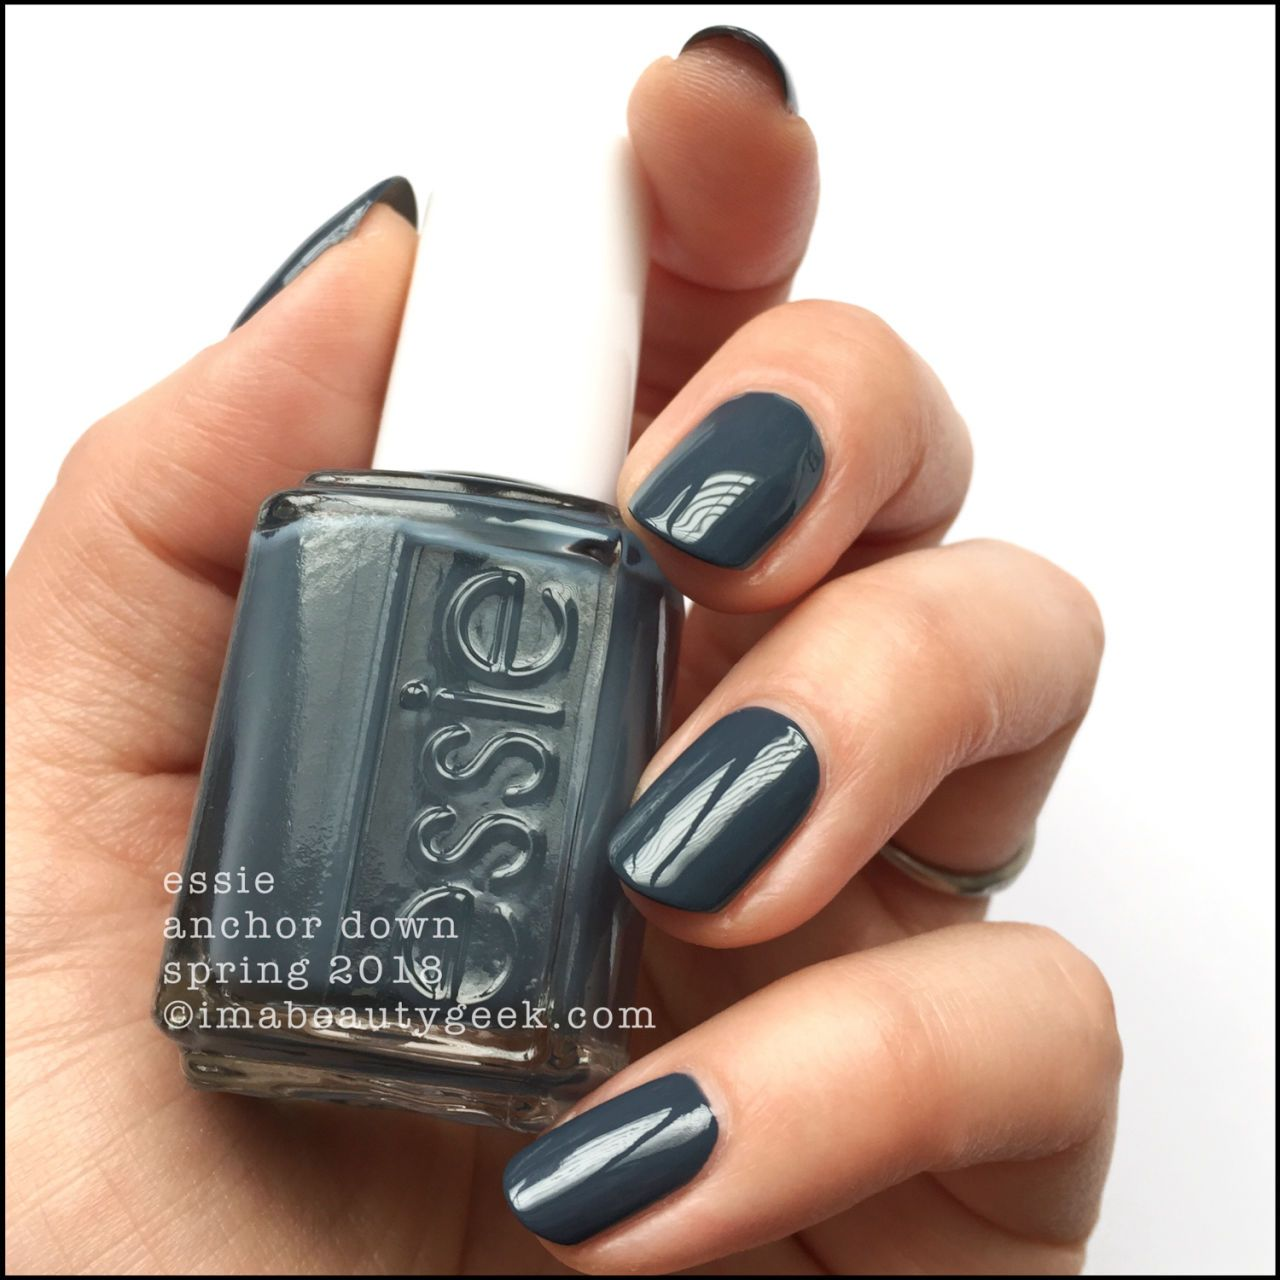 ESSIE SPRING 2018 COLLECTION SWATCHES & REVIEW in 2019   Nails ...